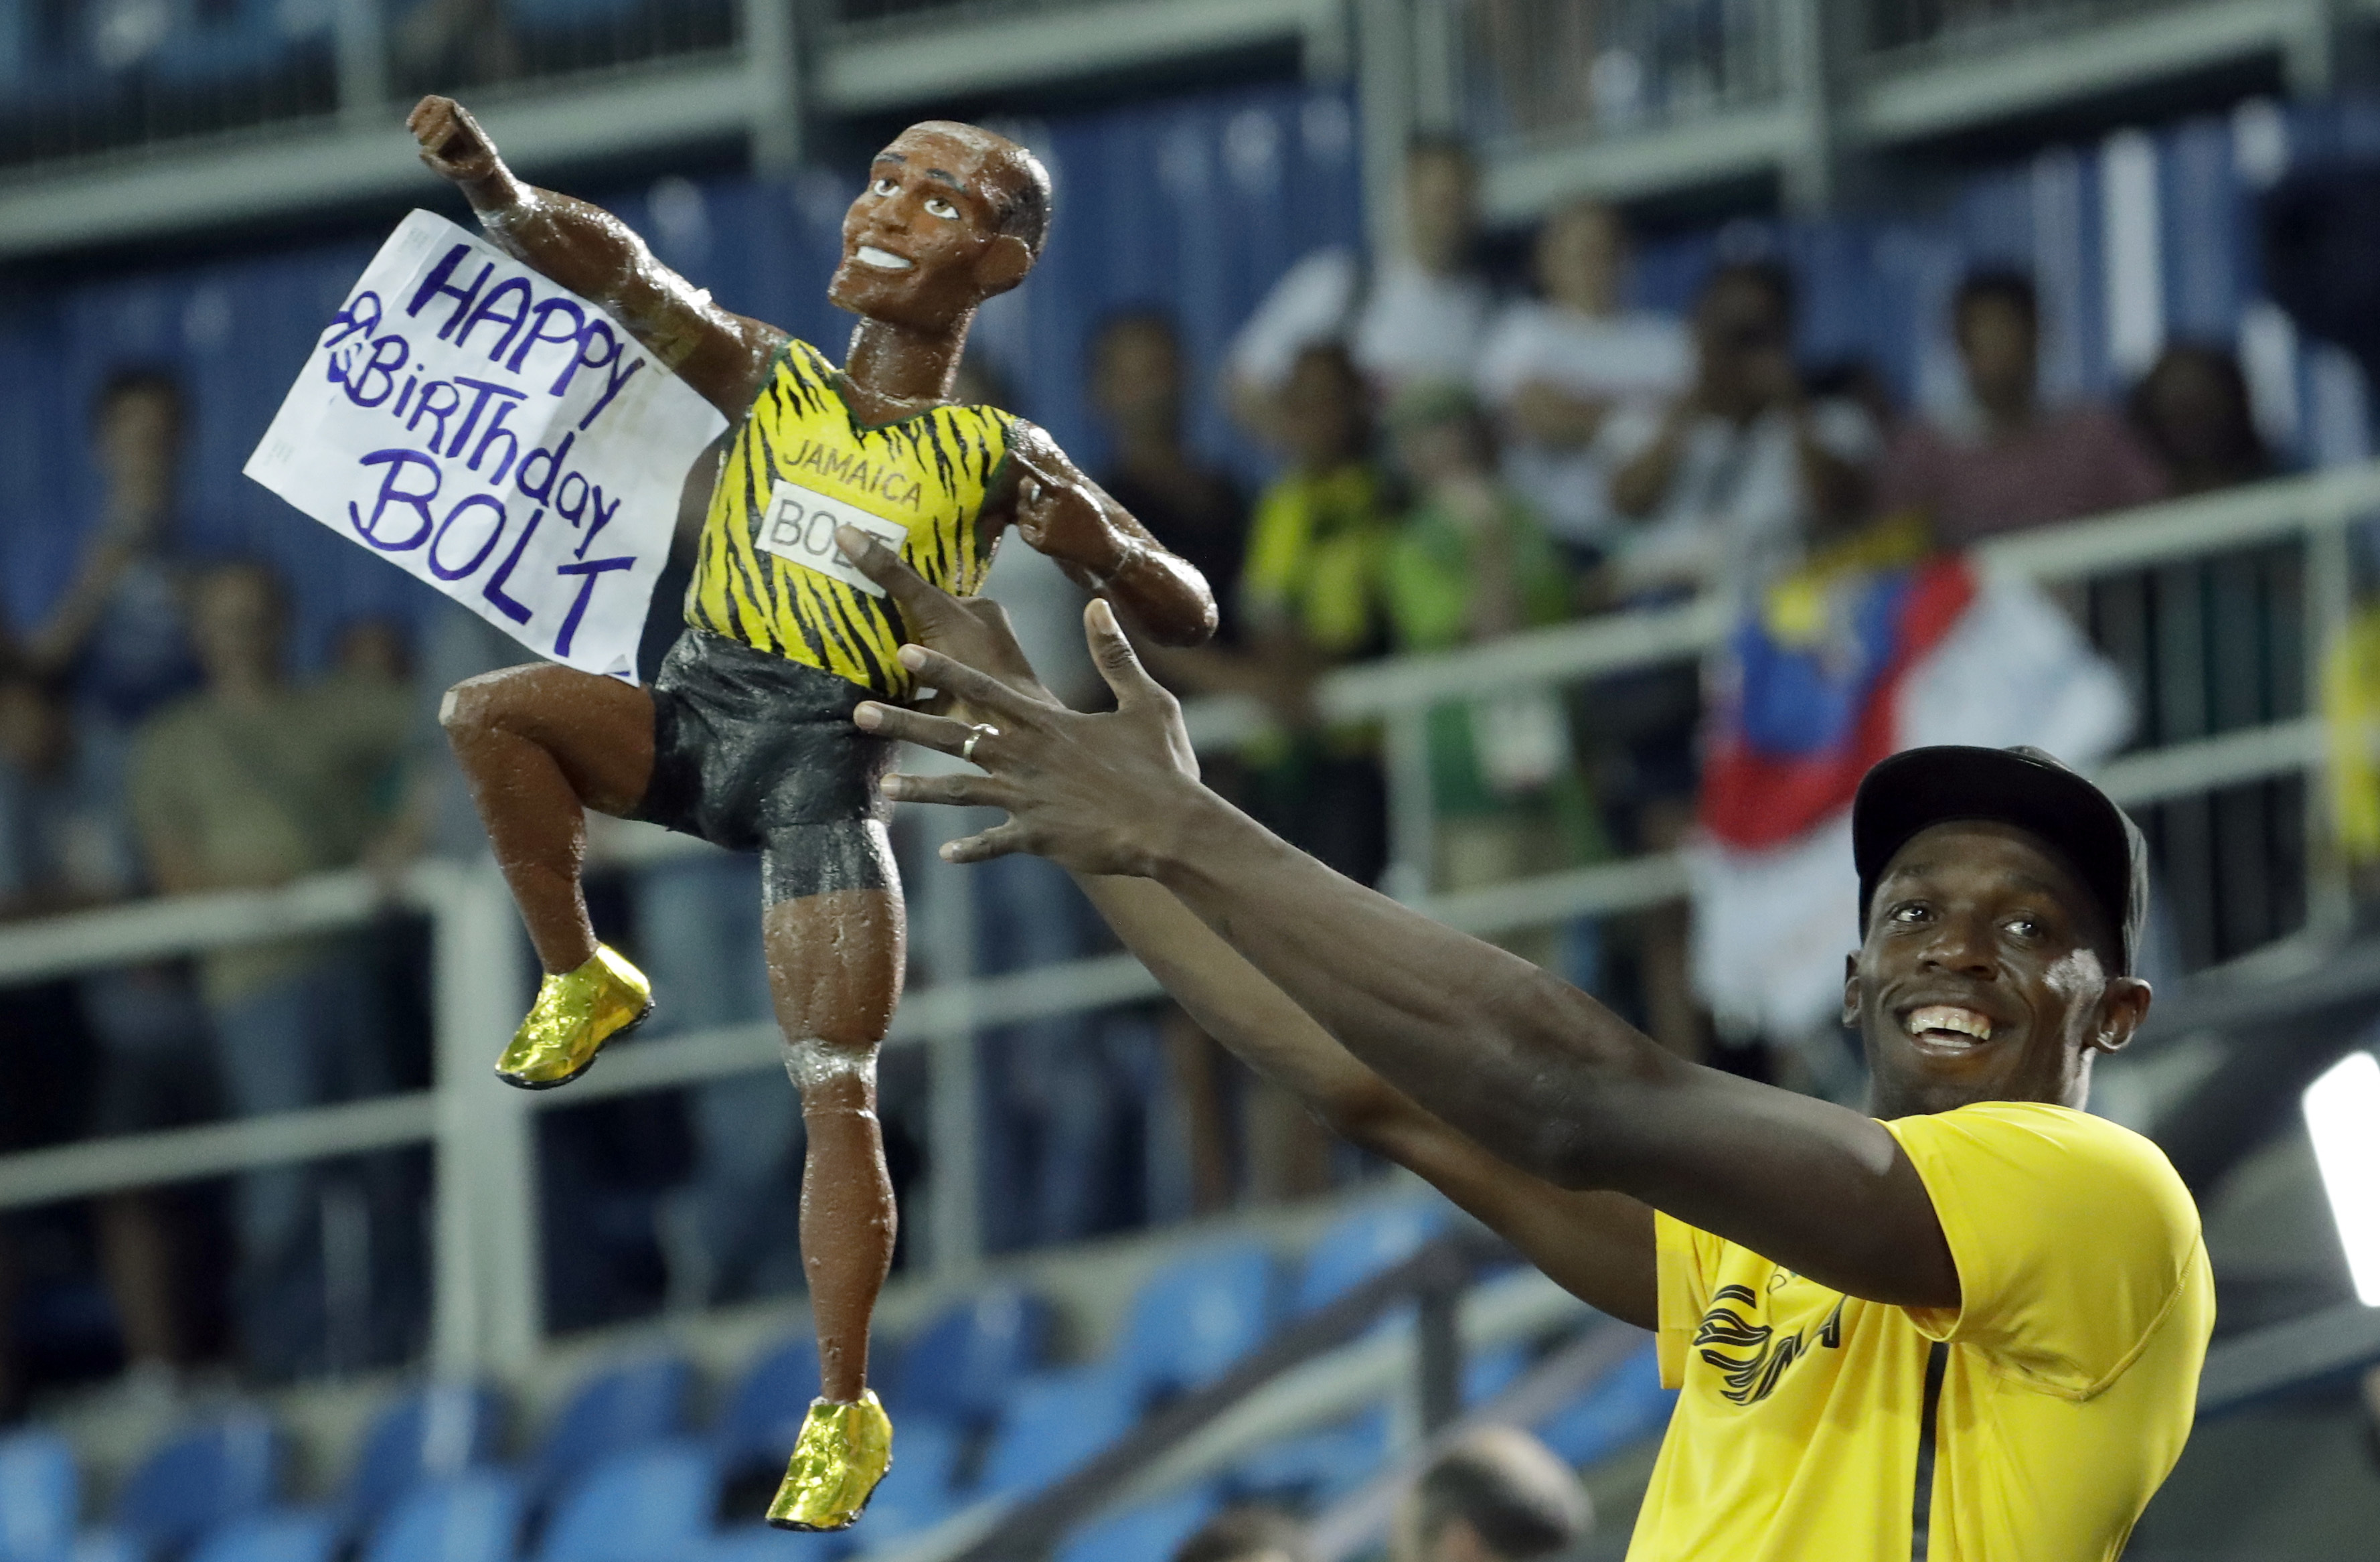 Jamaica's Usain Bolt holds a model of himself as he celebrates winning the gold medal in the men's 4x100-meter relay final at the Rio Games on Friday. He turns 30 years old on Saturday. | AP